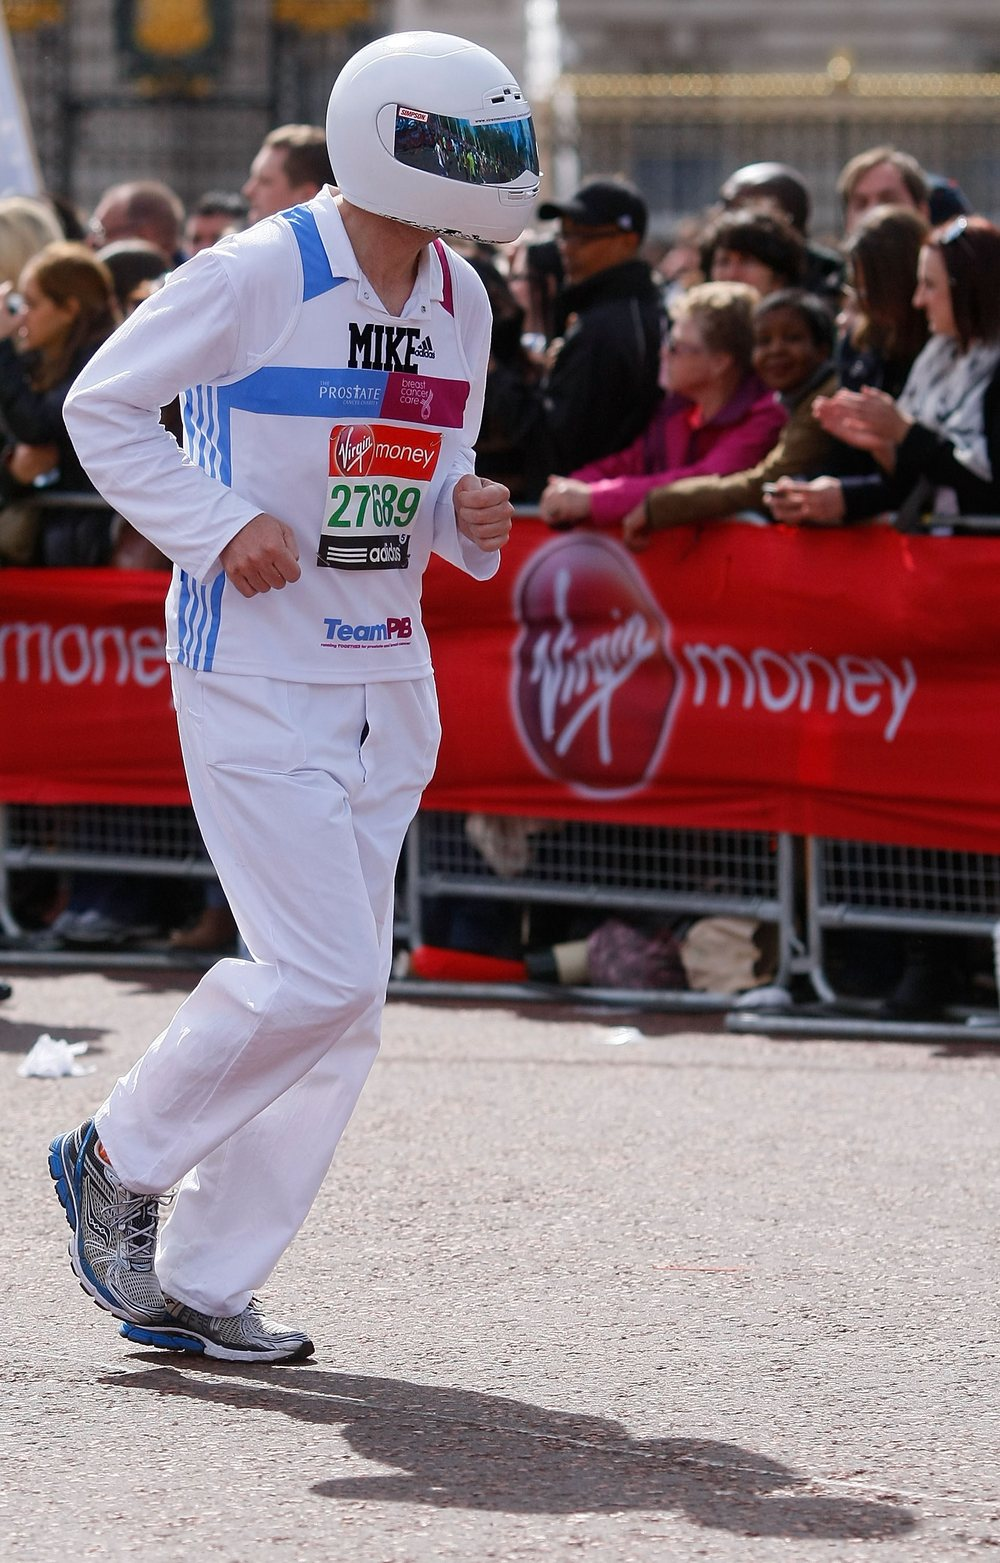 Virgin London Marathon 2012